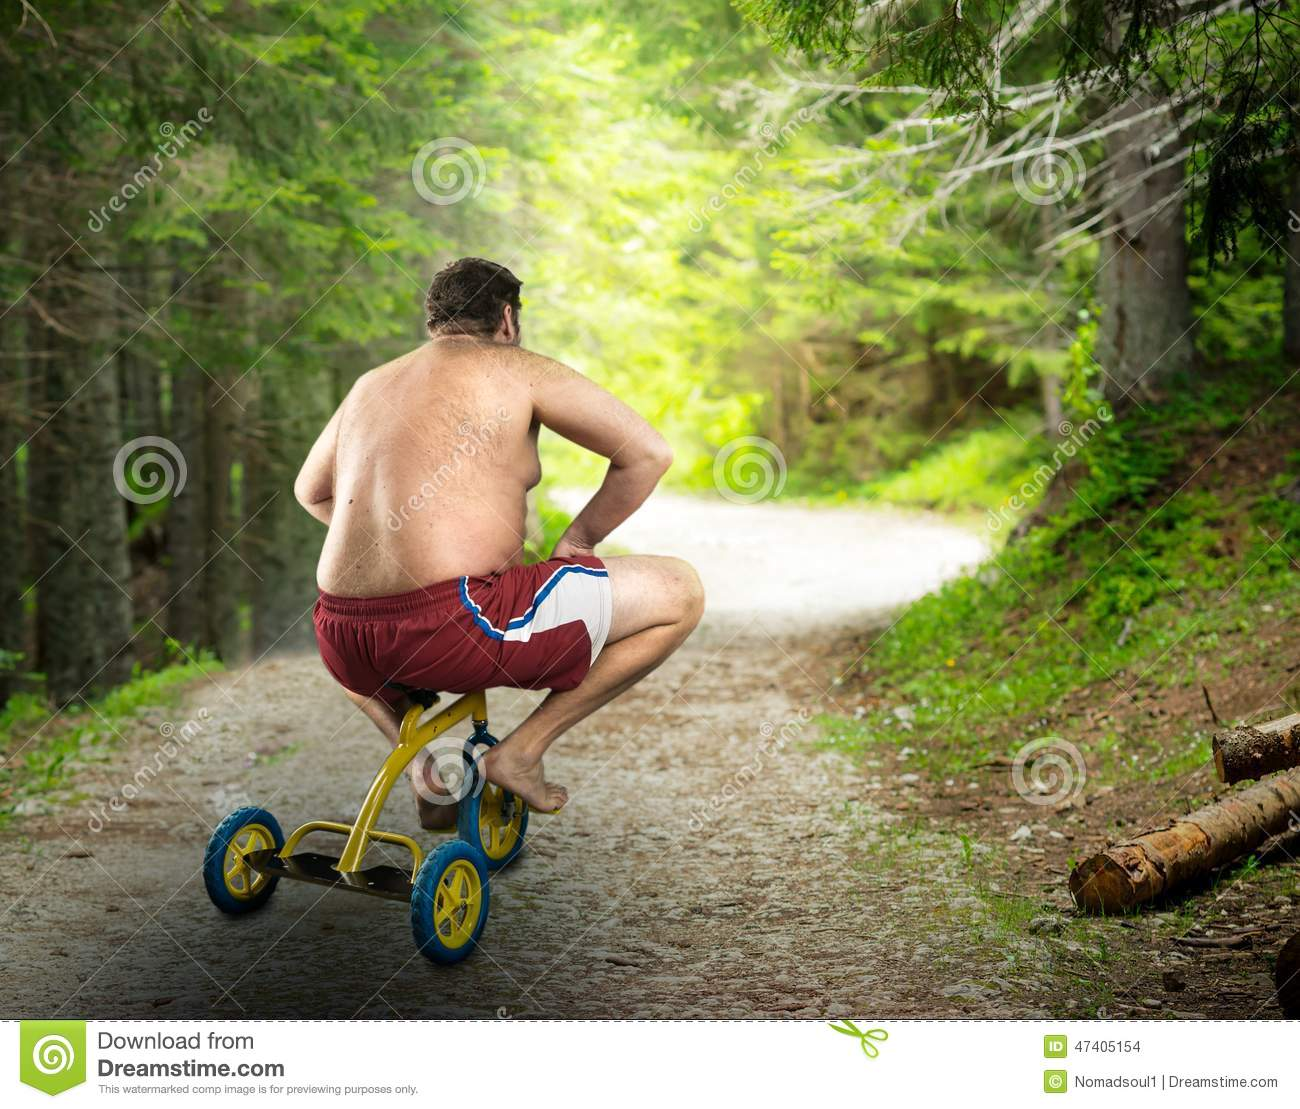 Adult naked man cycling on child s bicycle